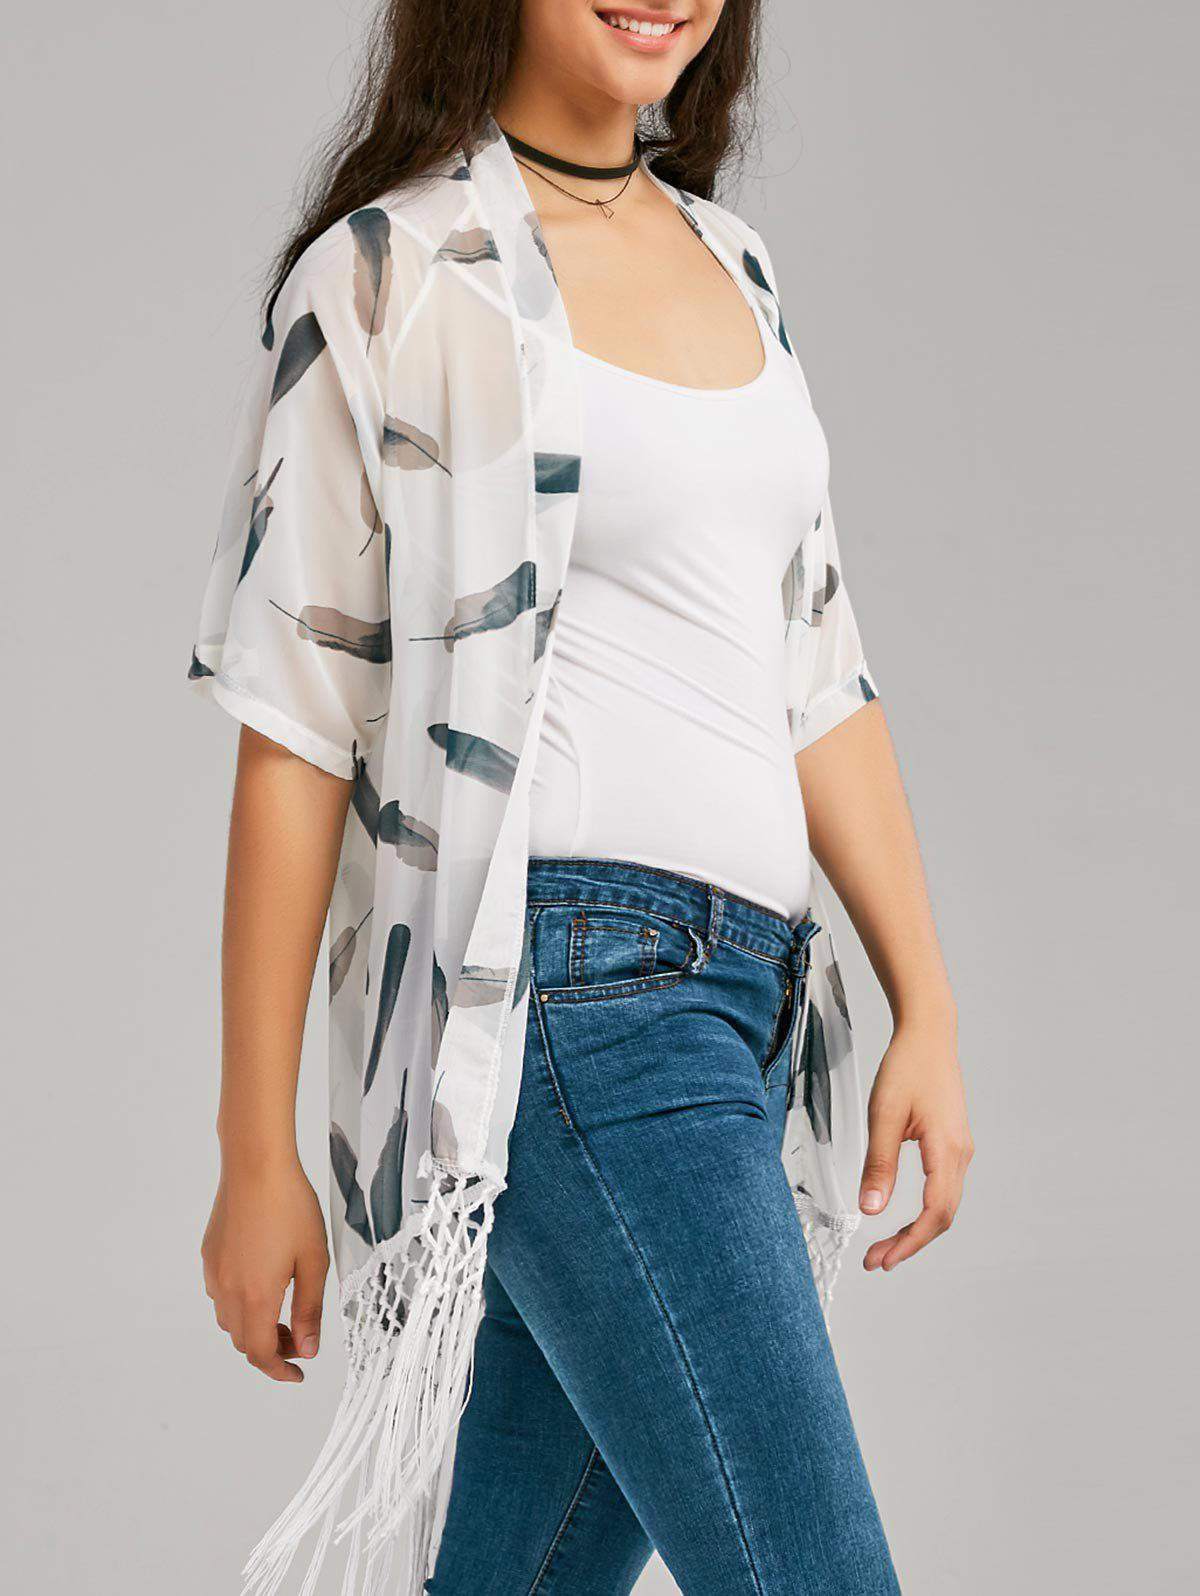 Fringe Print Long Sheer Chiffon Cape - WHITE L